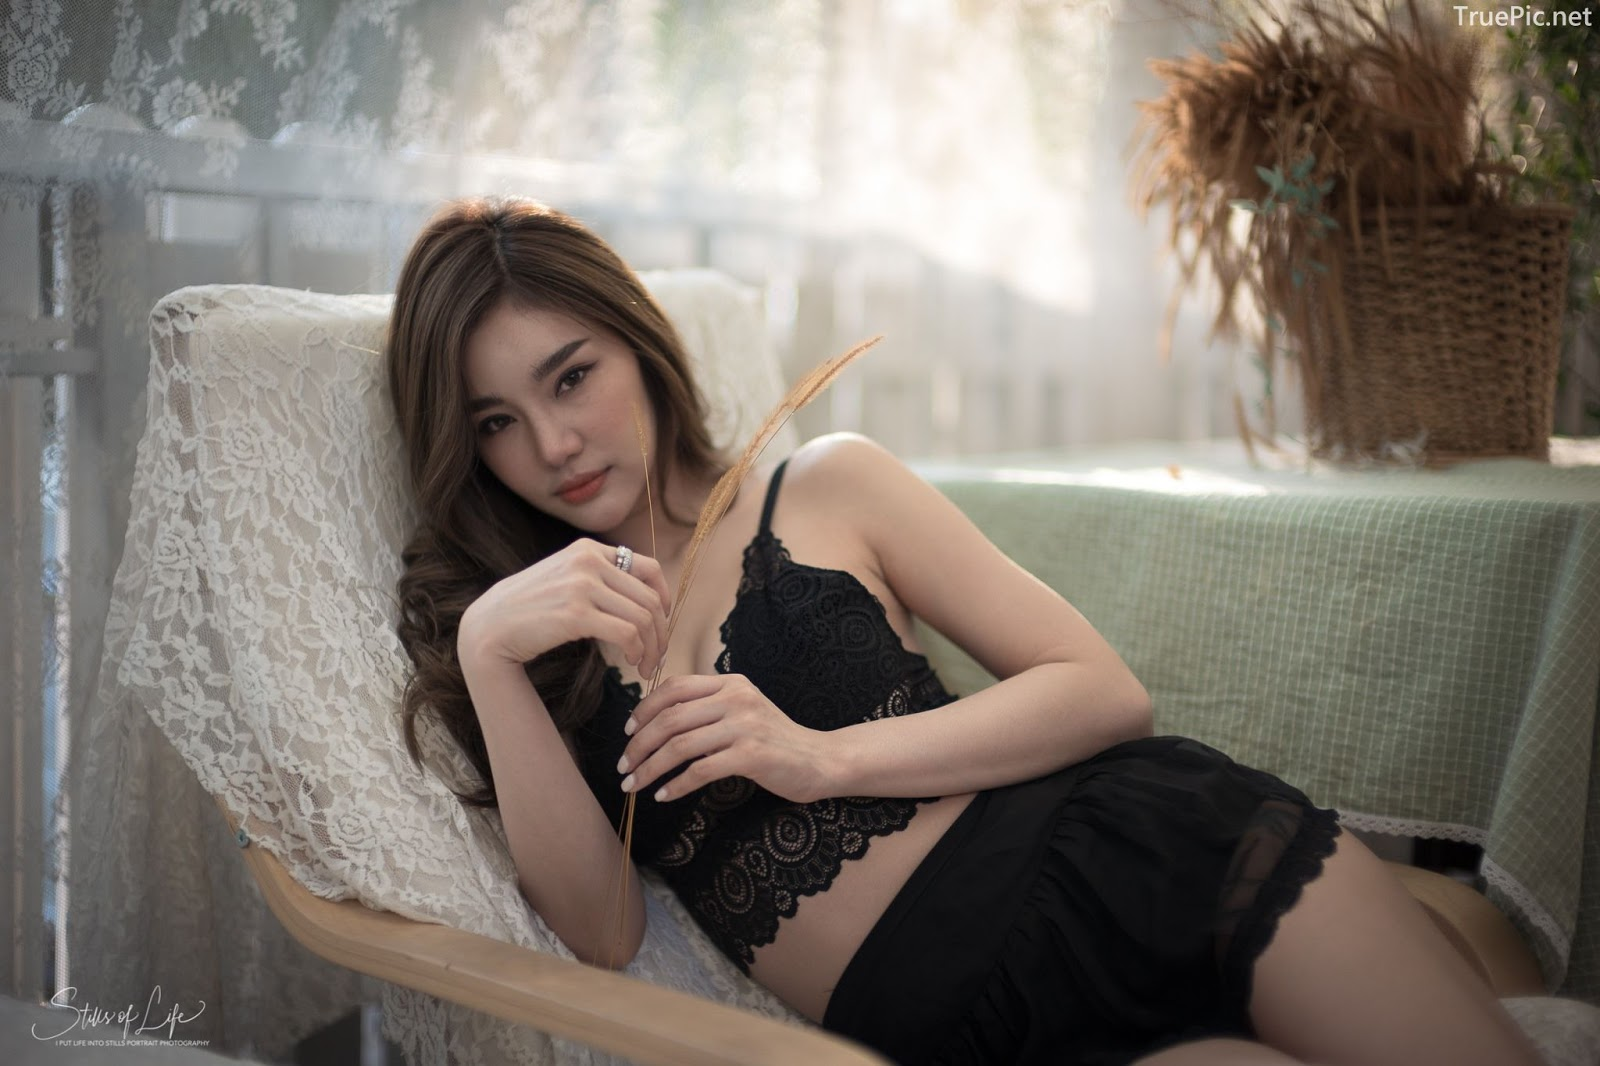 Thailand model - Jarunan Tavepanya - Charming black rose for Valentine day